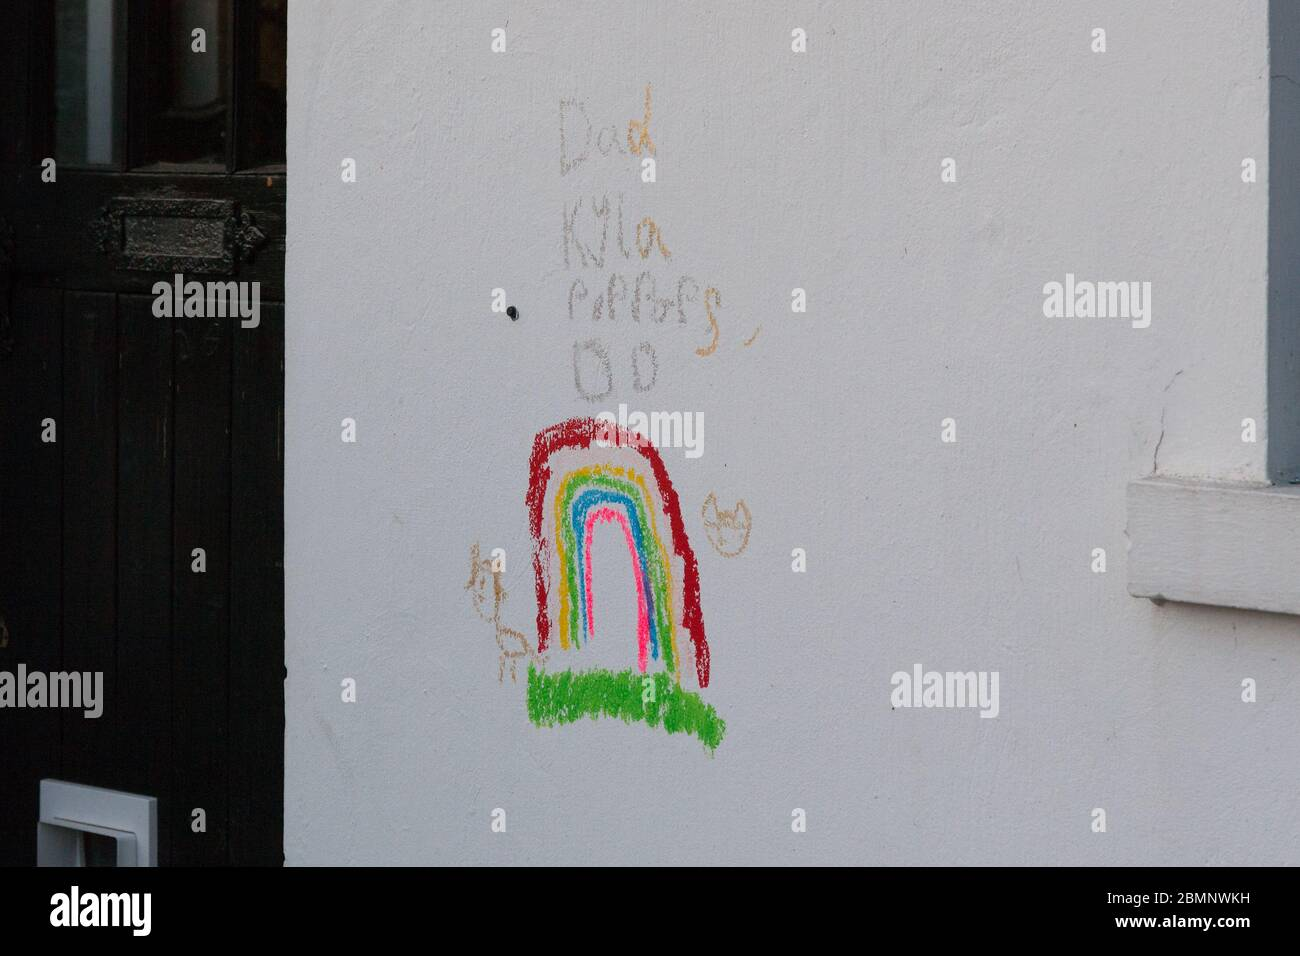 Huddersfield, UK - May 4 2020: A child's drawing of a rainbow in crayon on the side of a house in West Yorkshire. Stock Photo